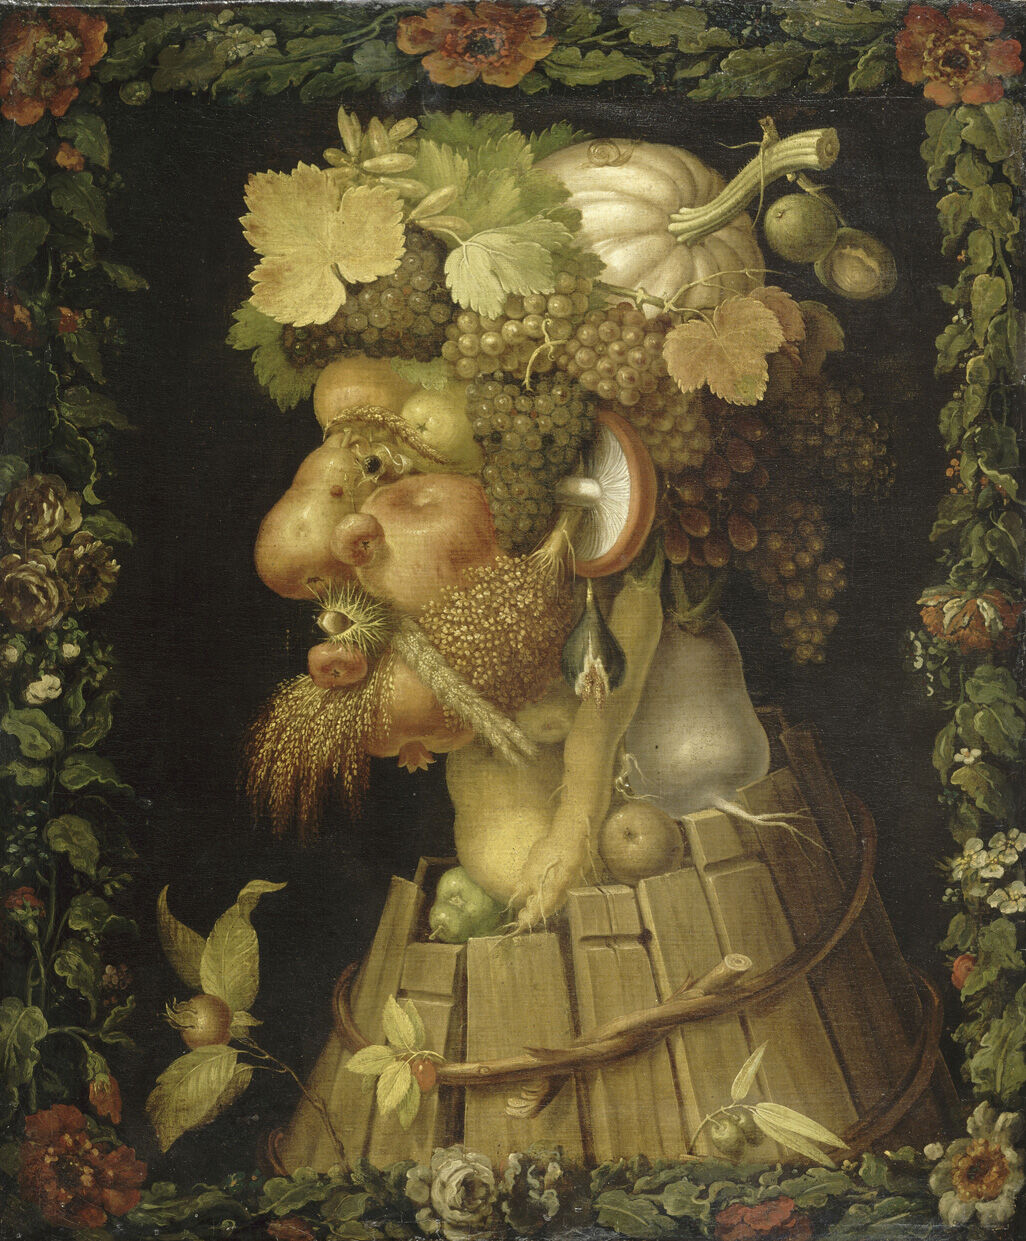 Giuseppe Arcimboldo, Autumn, 1573. Image via Wikimedia Commons.